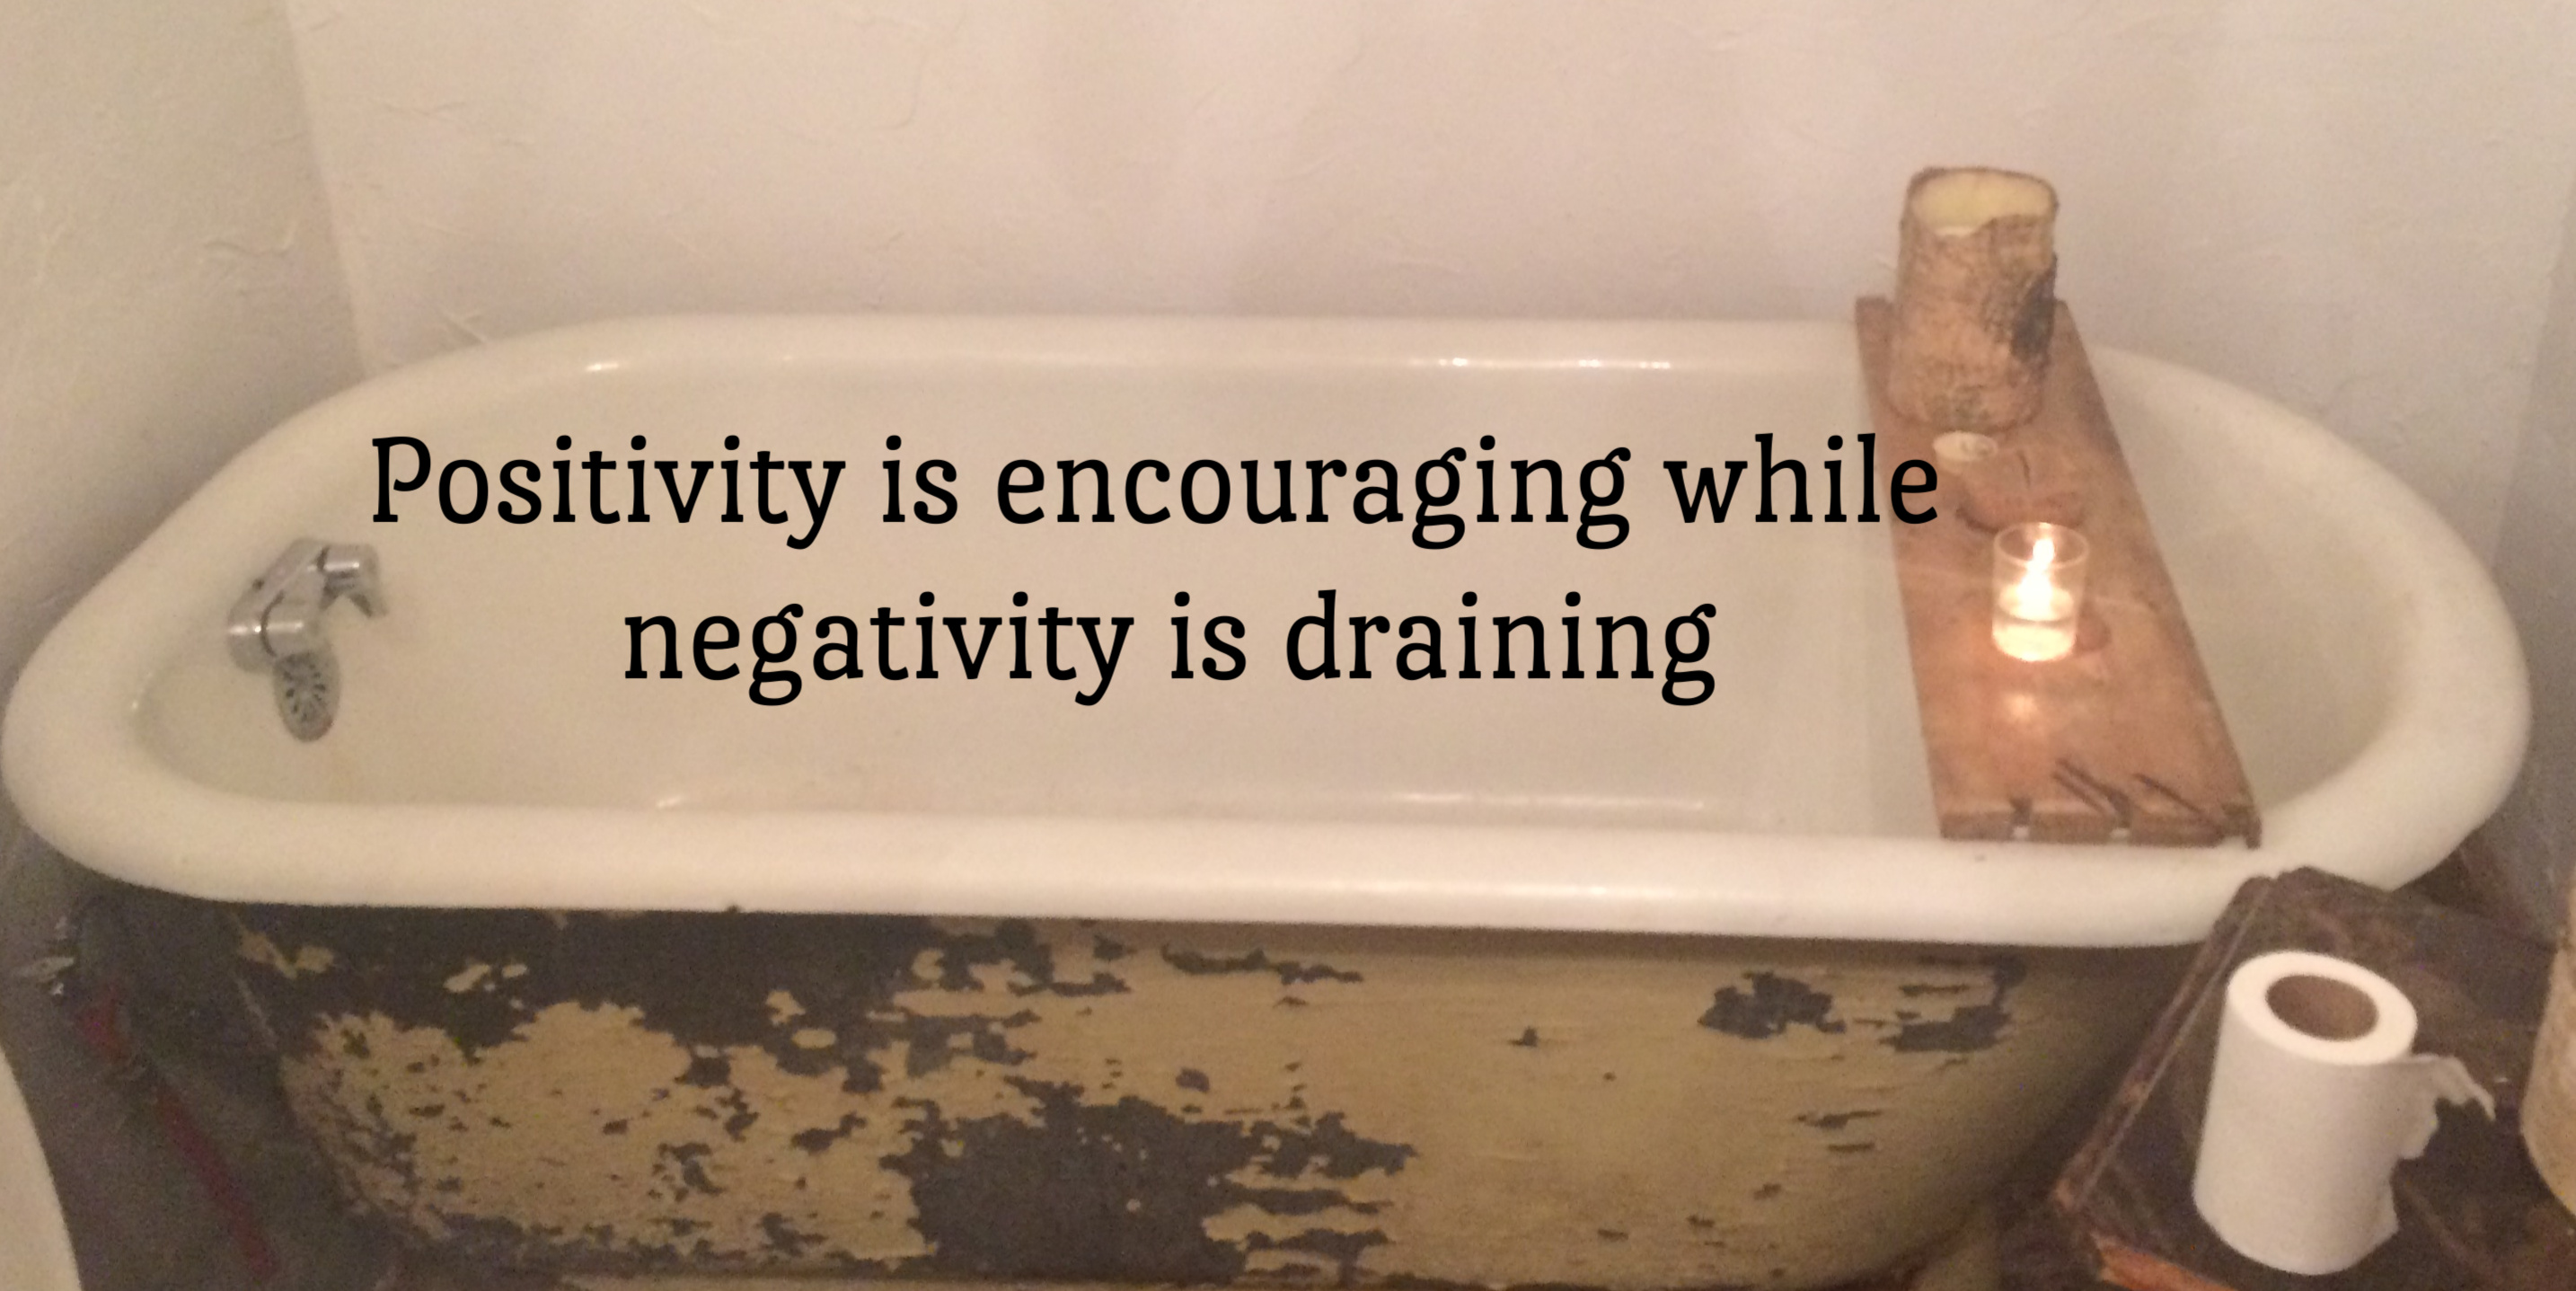 Old Fashioned bathtub with positivity quote.jpg (1)